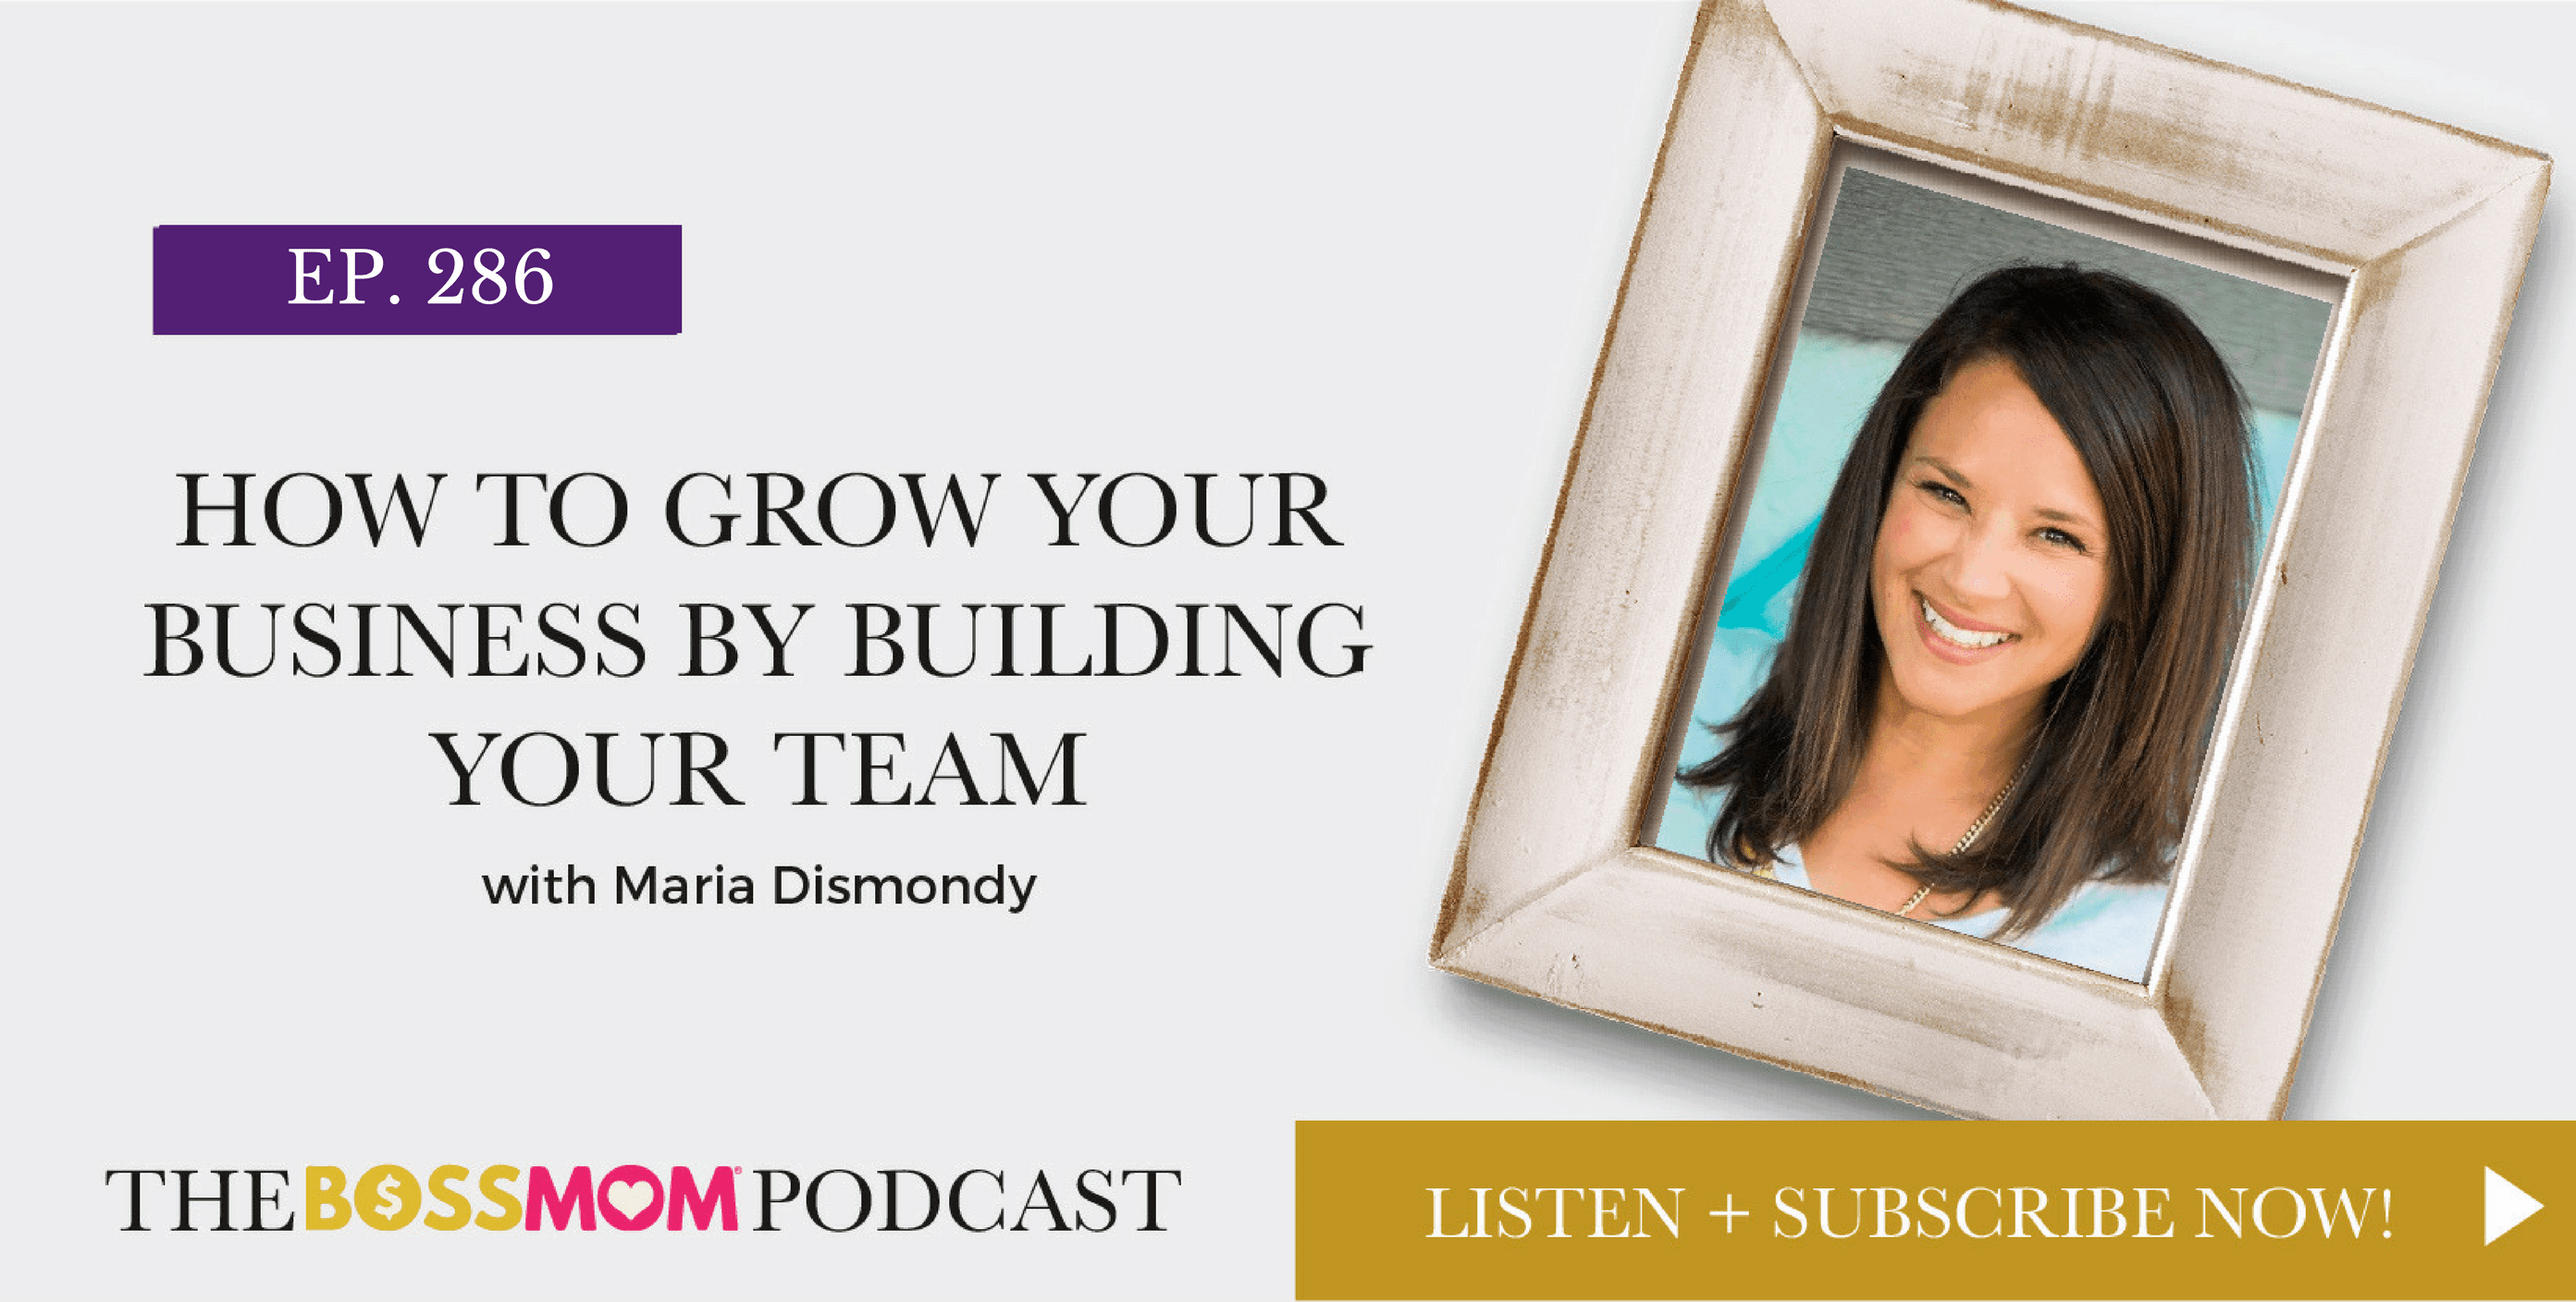 Episode 286: How to Grow Your Business by Building Your Team with Maria Dismondy